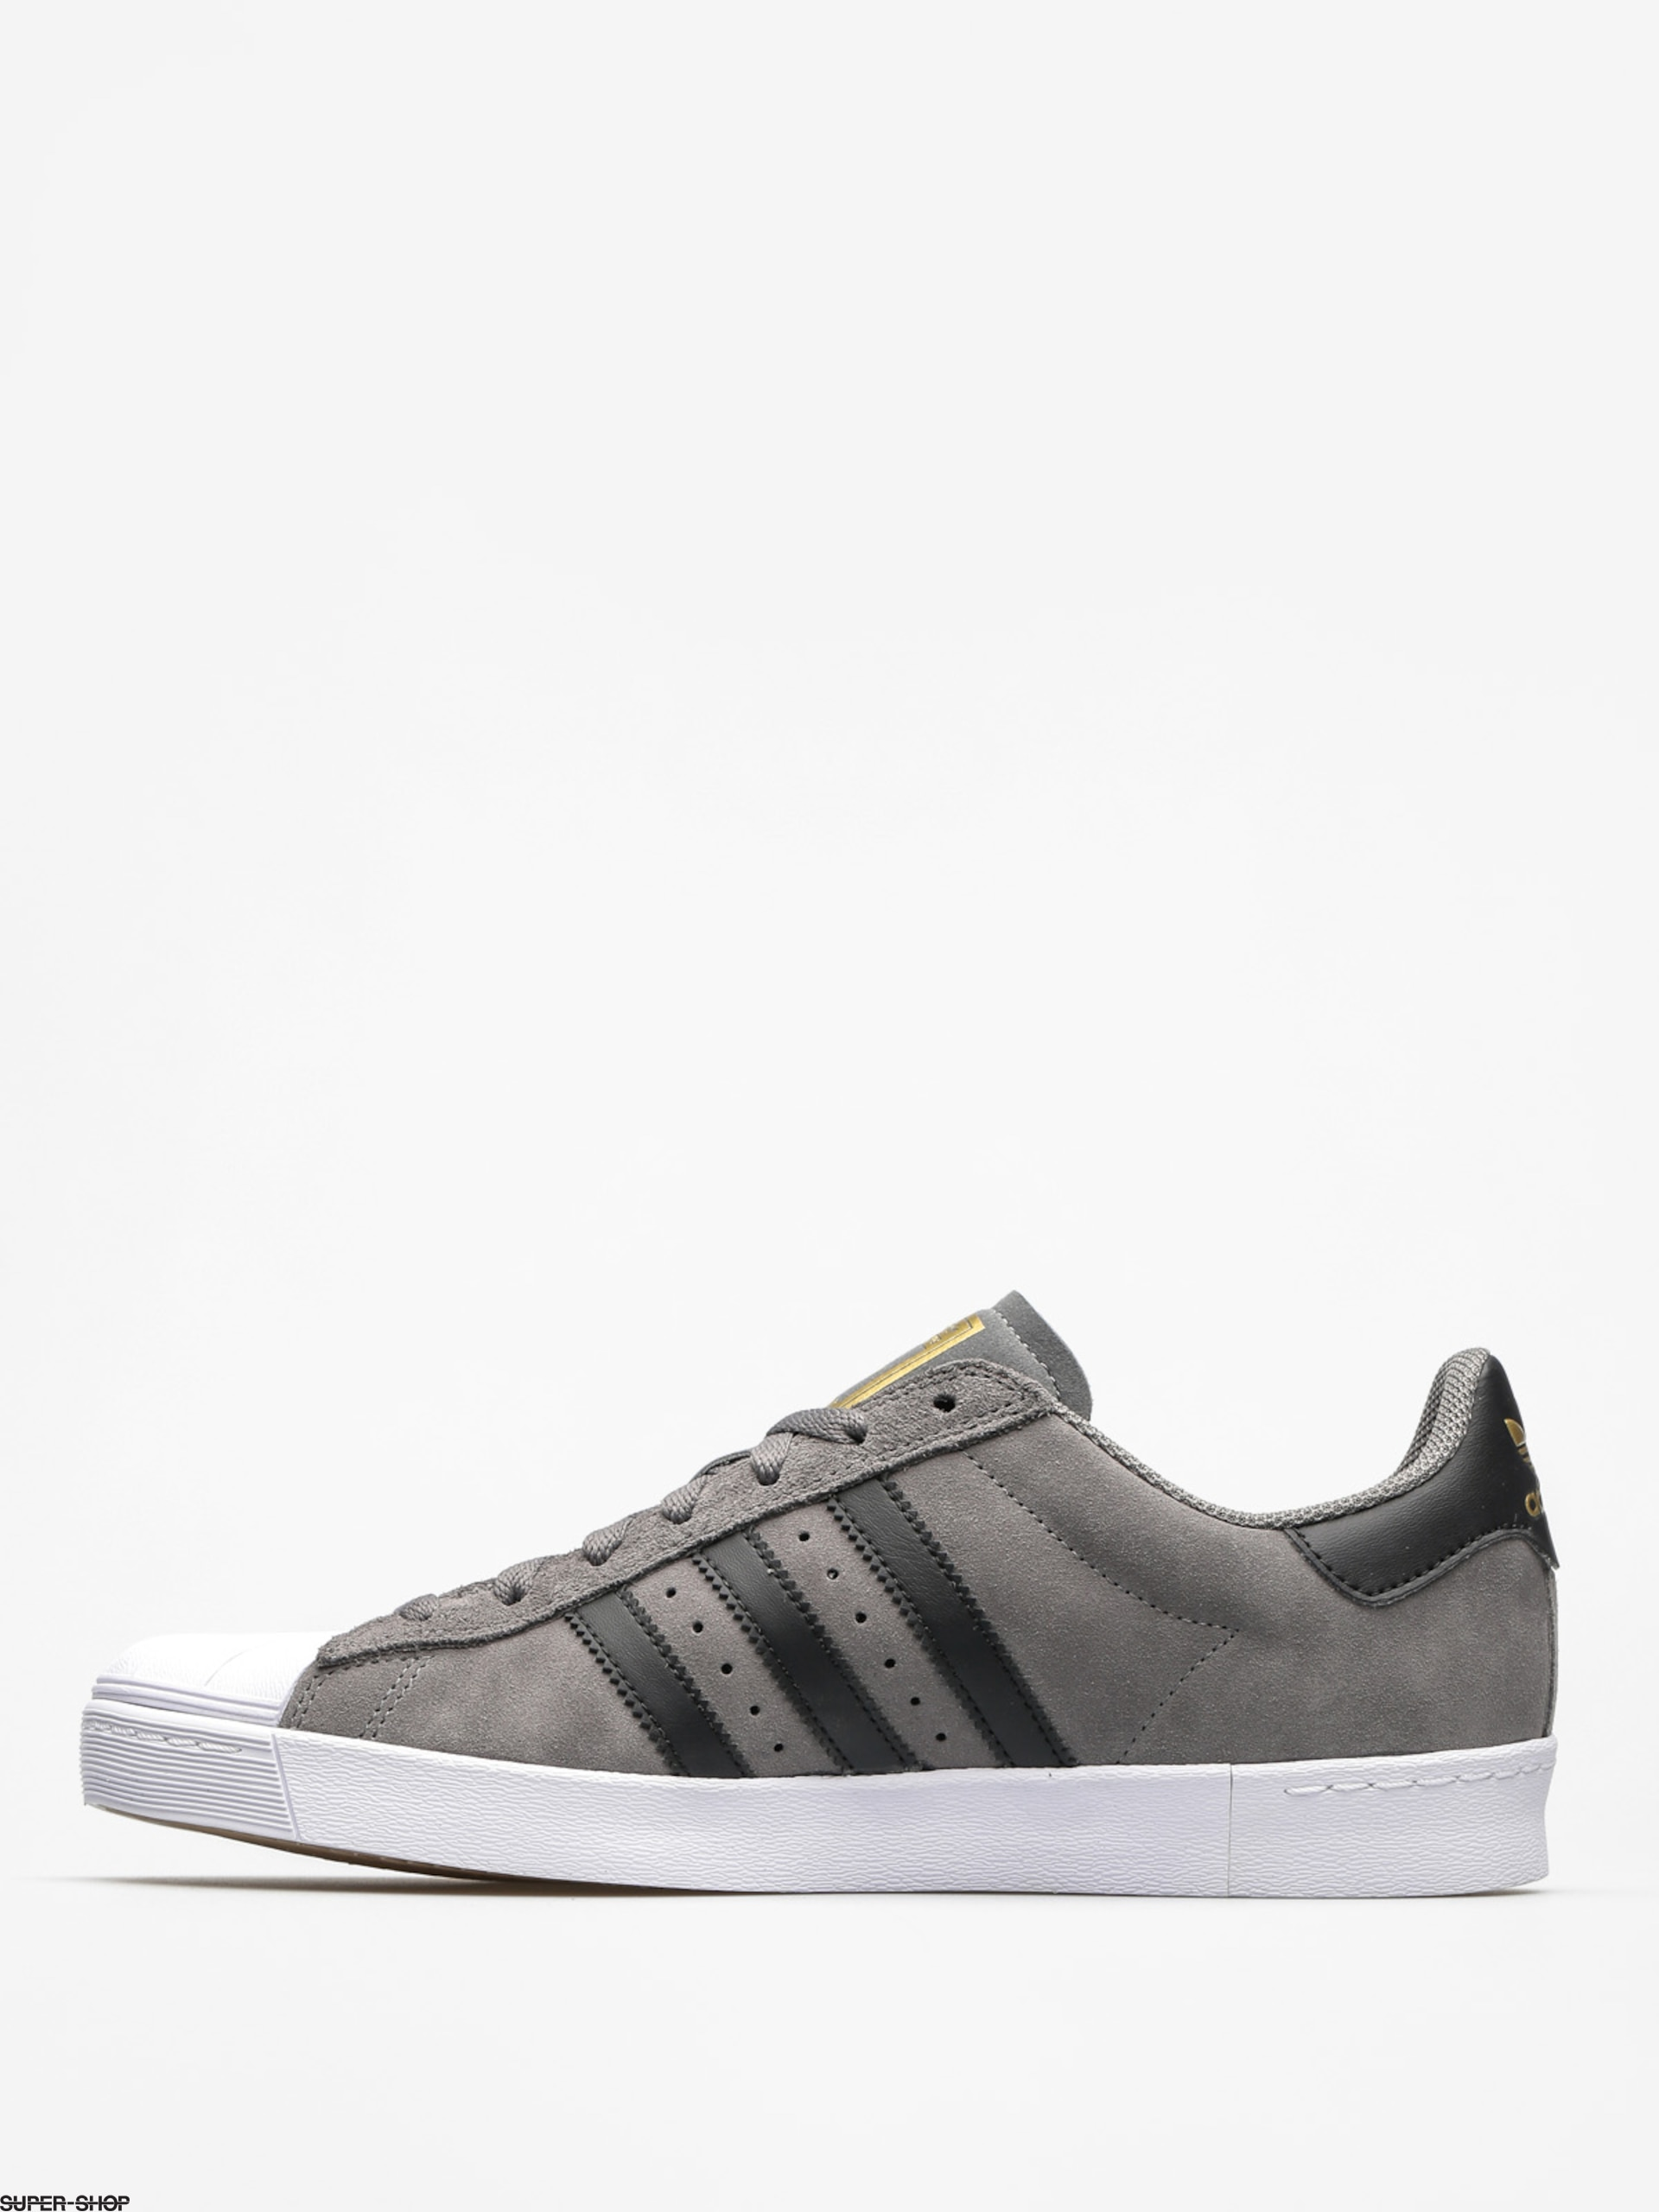 Adidas Superstar Vulc ADV Shoes Collegiate Navy / Chalk White